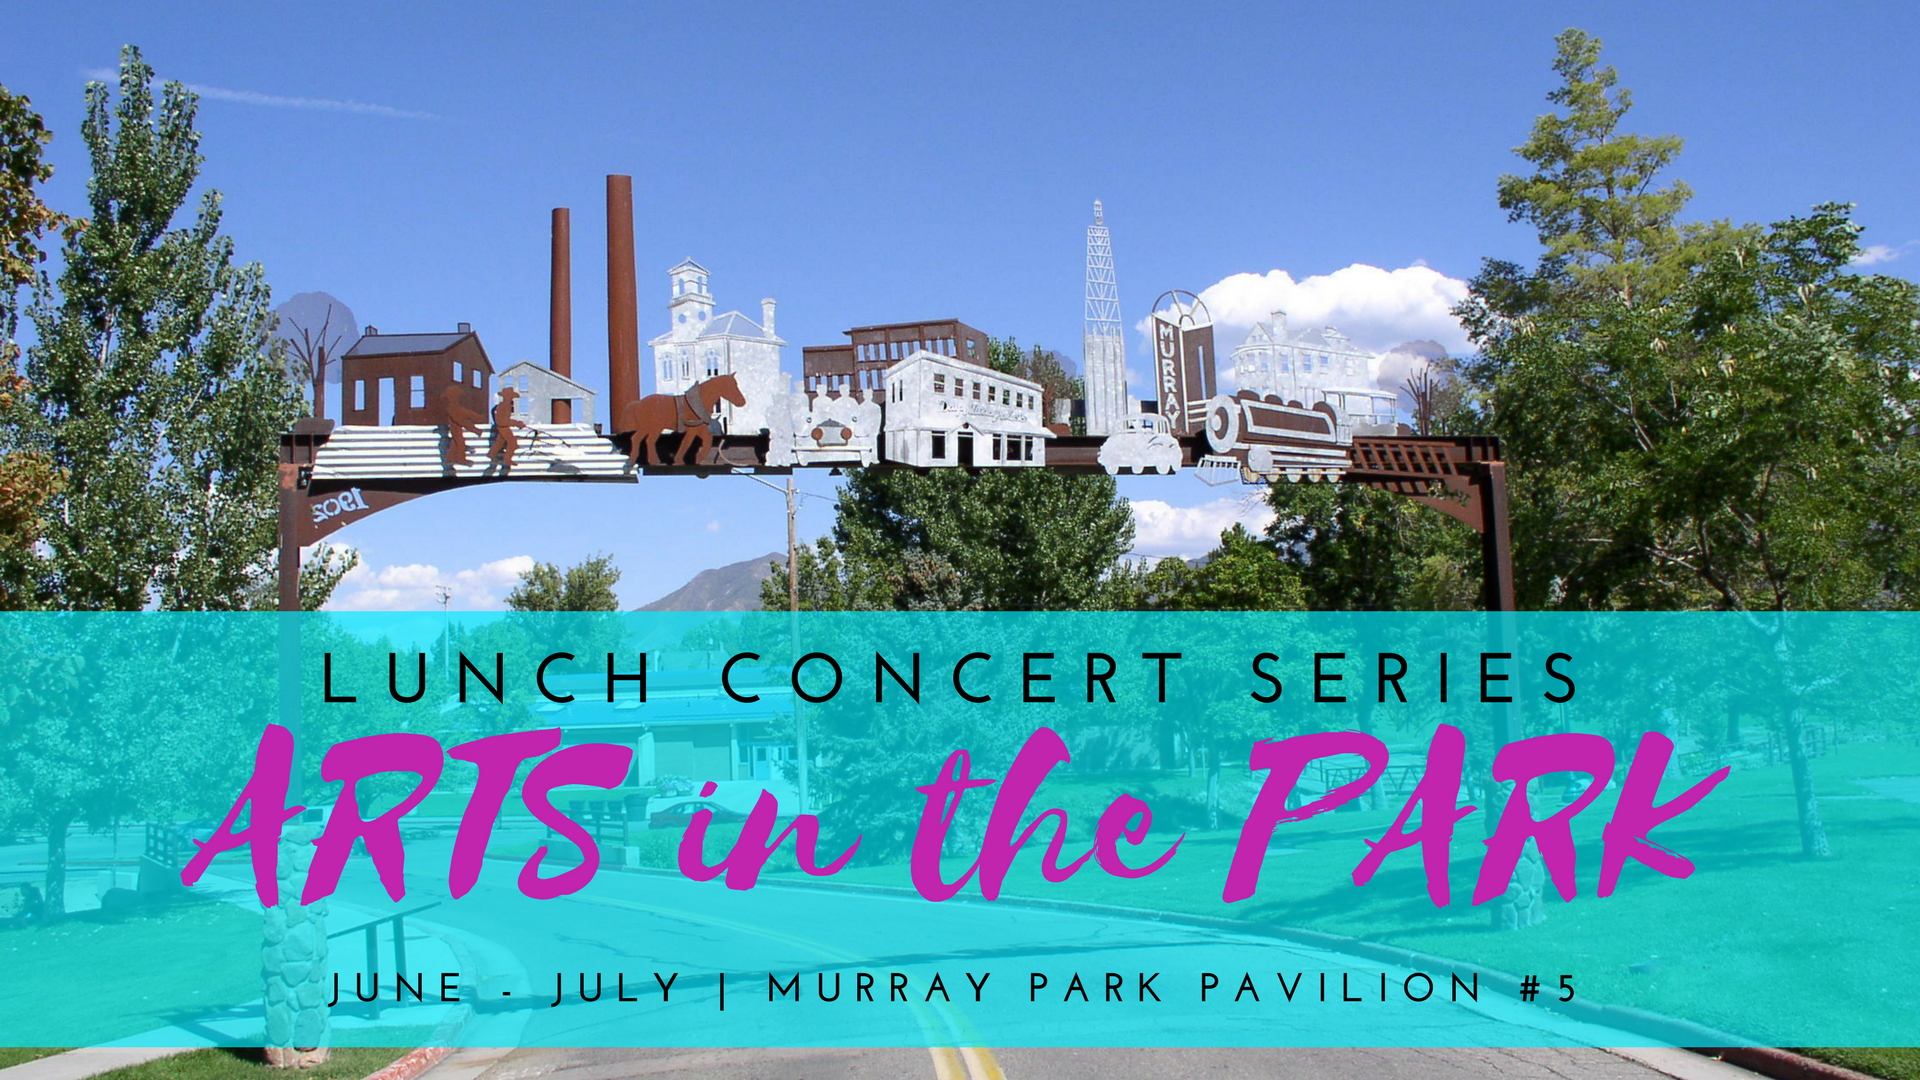 Lunch Concert Series